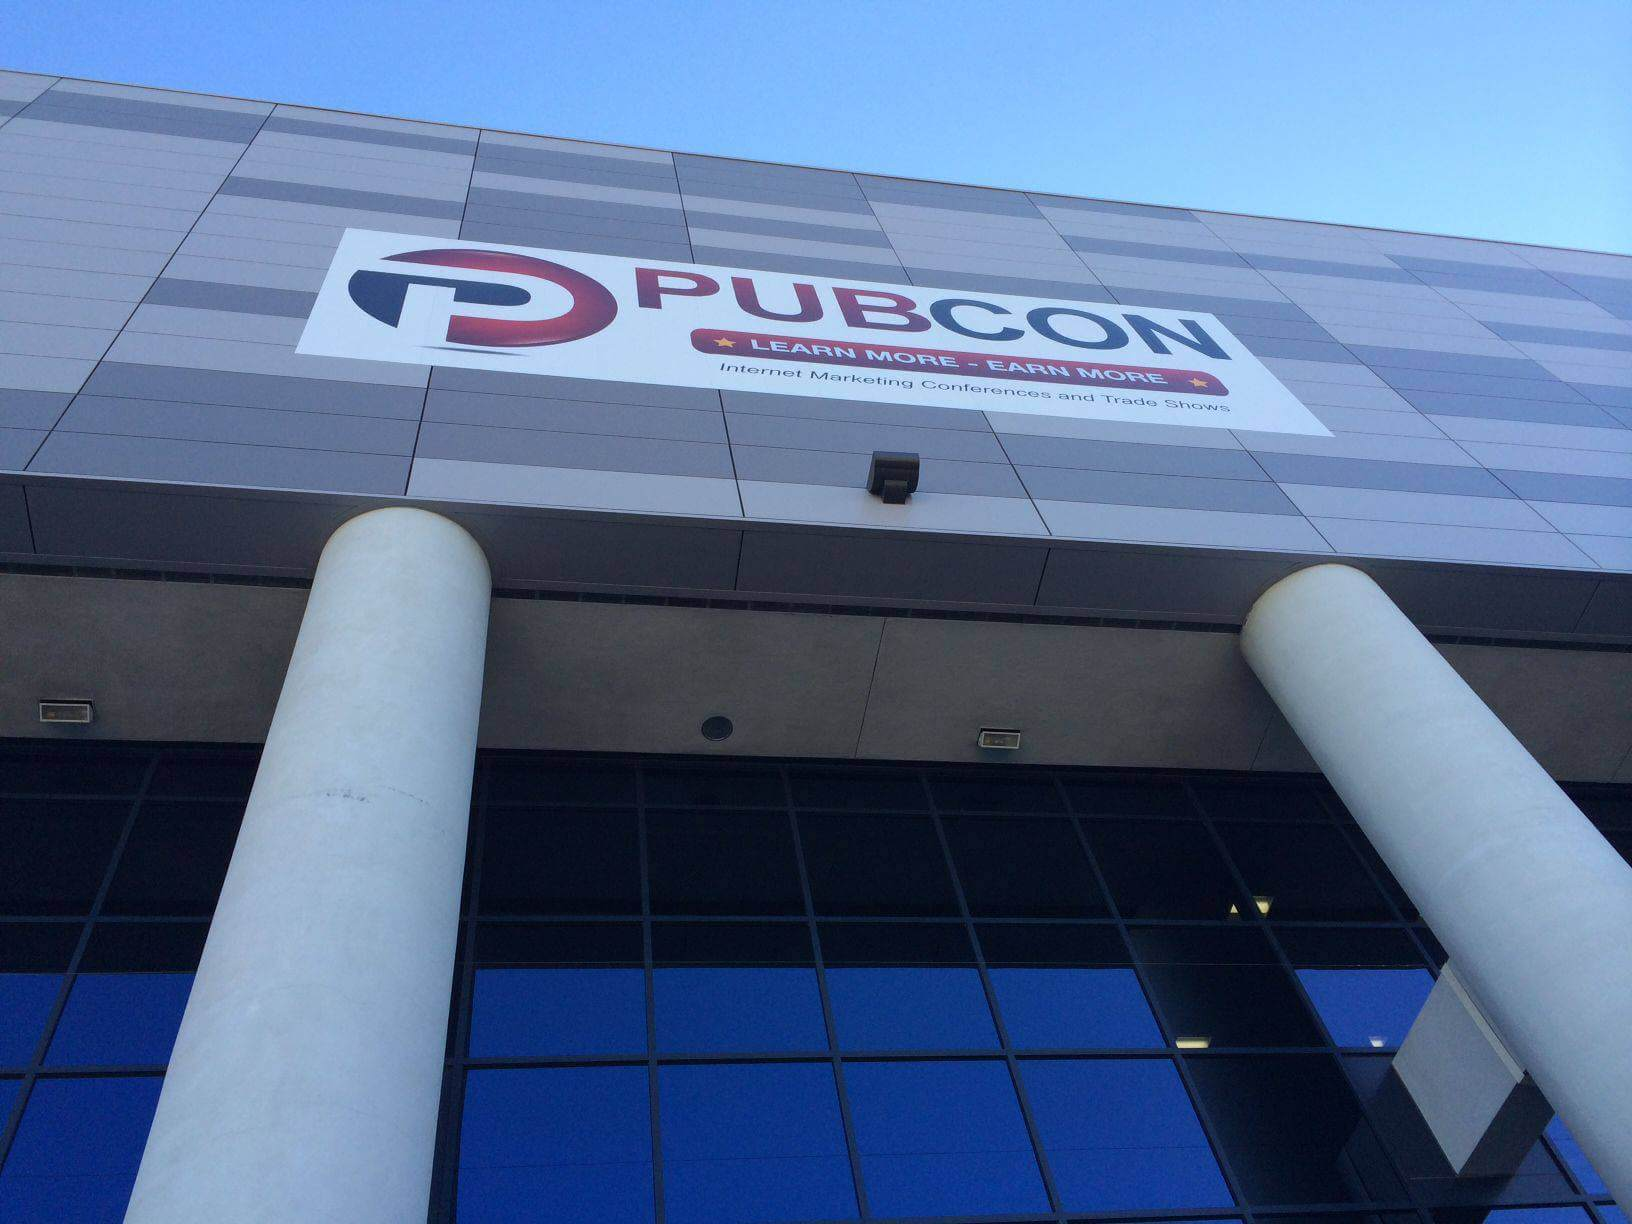 Pubcon outside banner pic